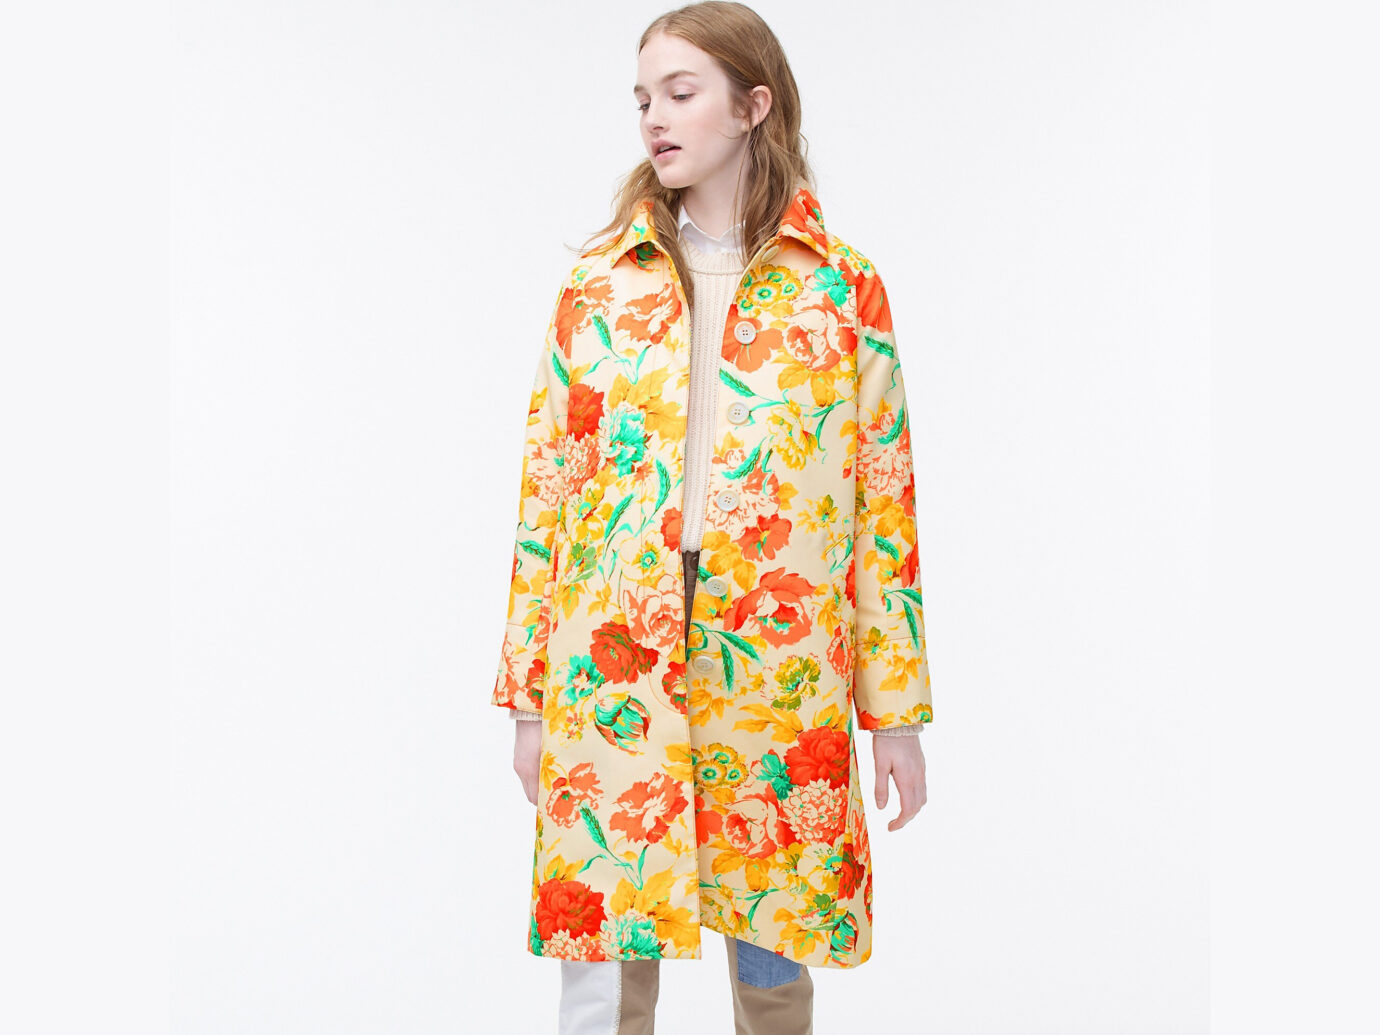 .Crew Collection Trench Coat in Ratti® Woodstock Floral Print